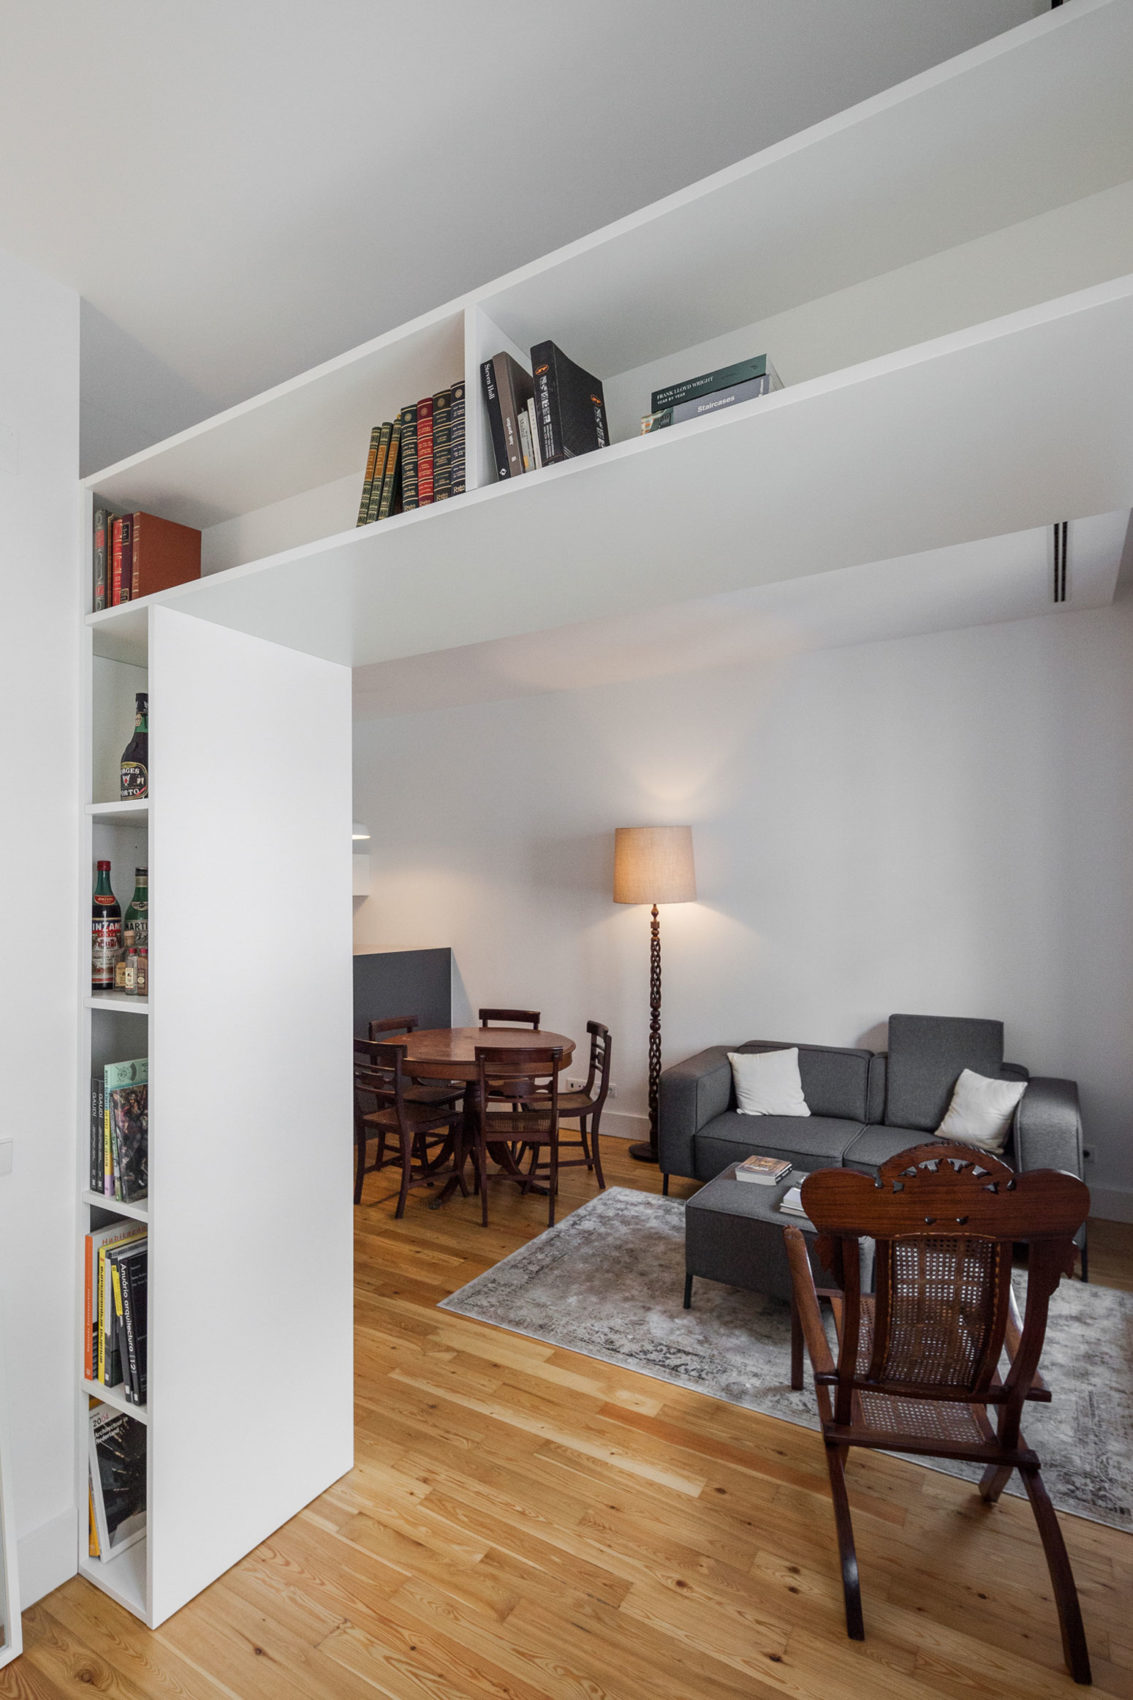 Apartment B9 by Filipe Melo Oliveira (14)